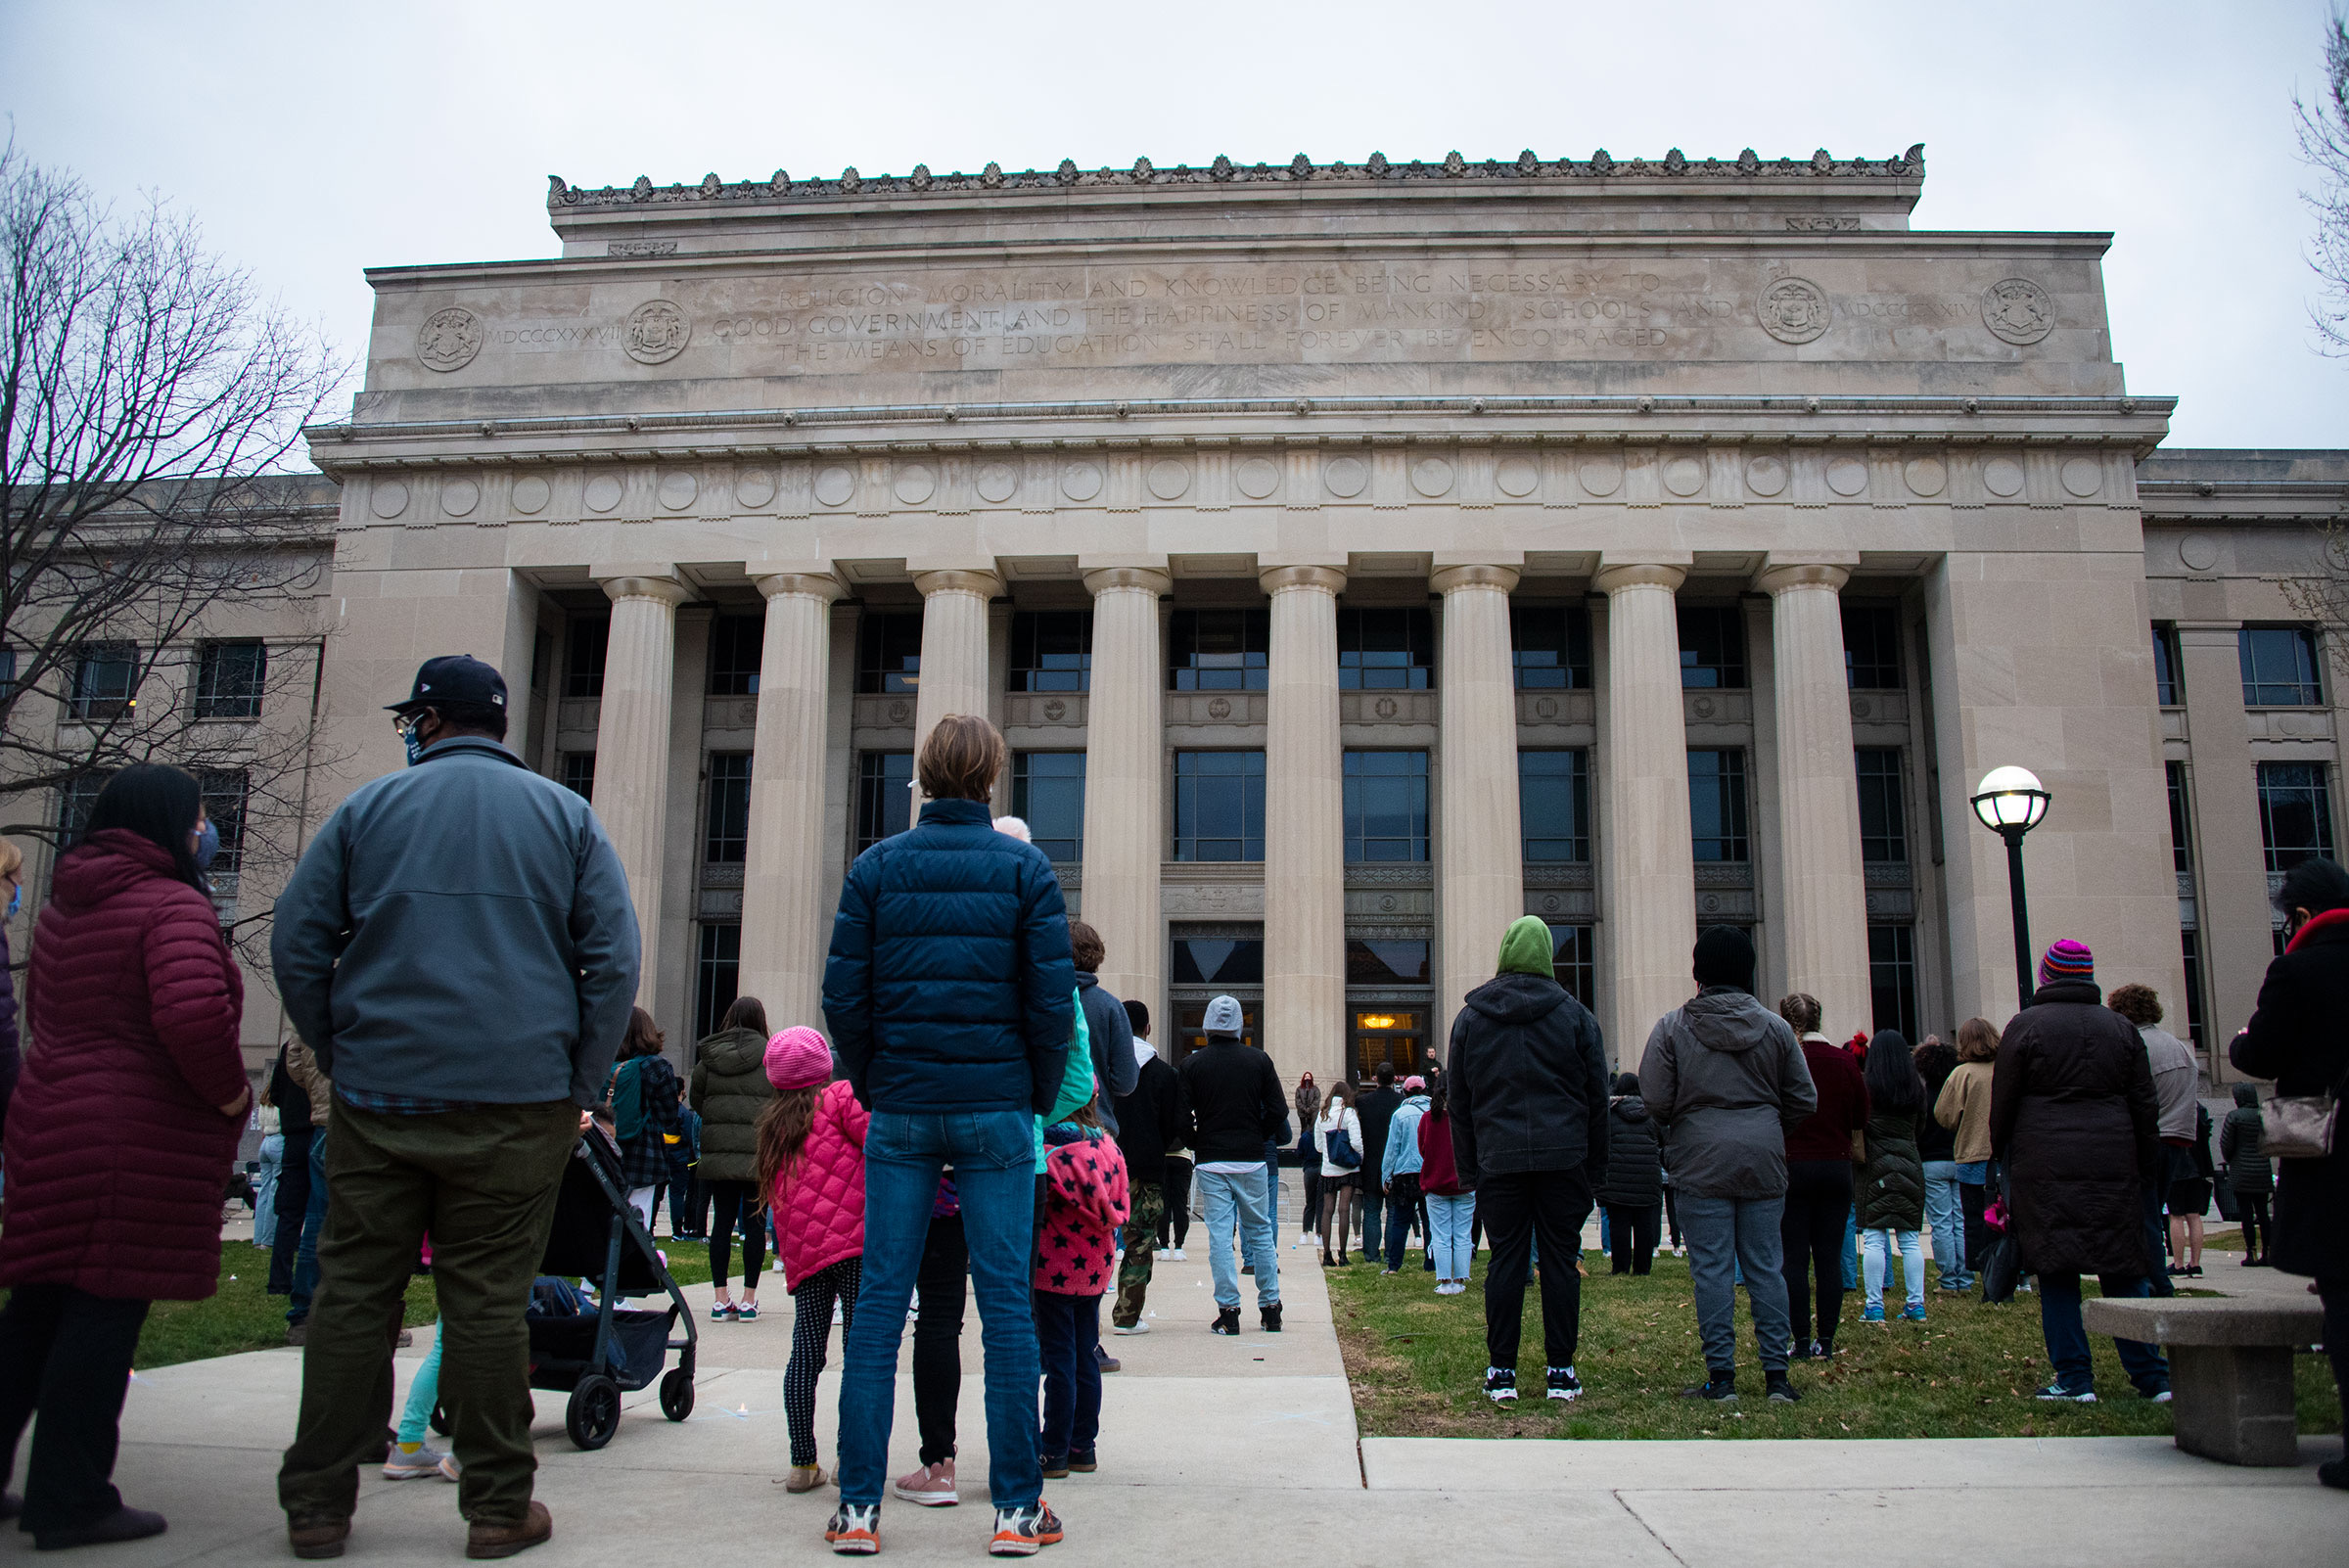 www.michigandaily.com: An open letter to the U-M community